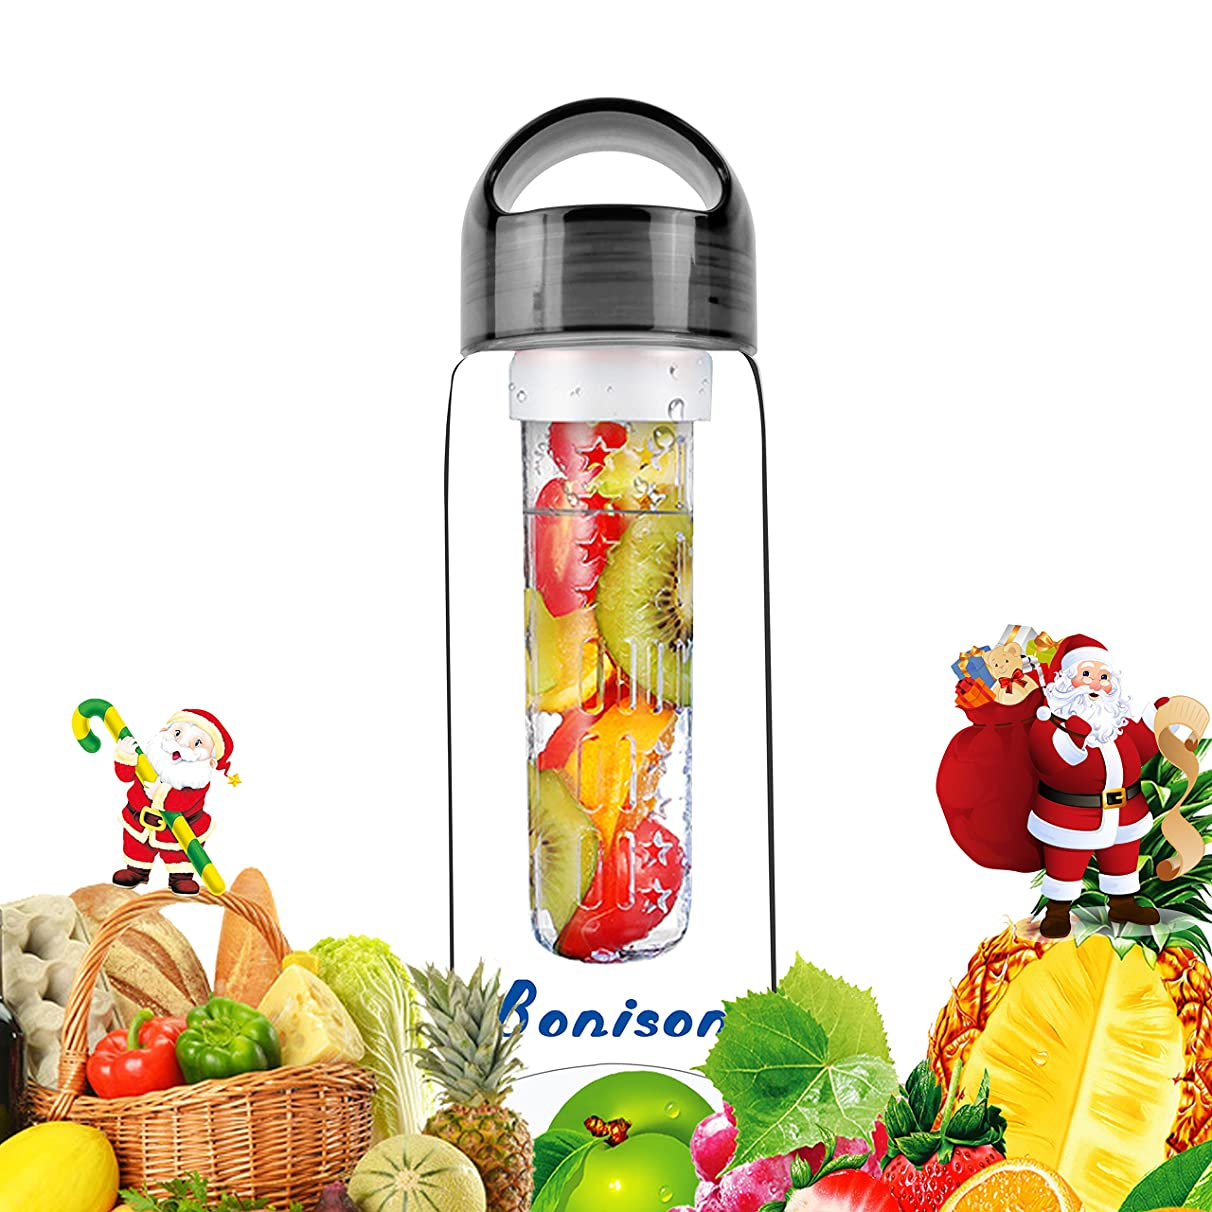 Black 23 oz Sporty Tritan Fruit Infuser Water Bottle, Sports Bottle, School Bottle, Leak Proof, with Handle, for Fruit, Juice, Iced Tea, Lemonade & Sparkling Beverages - with 2 Gifts